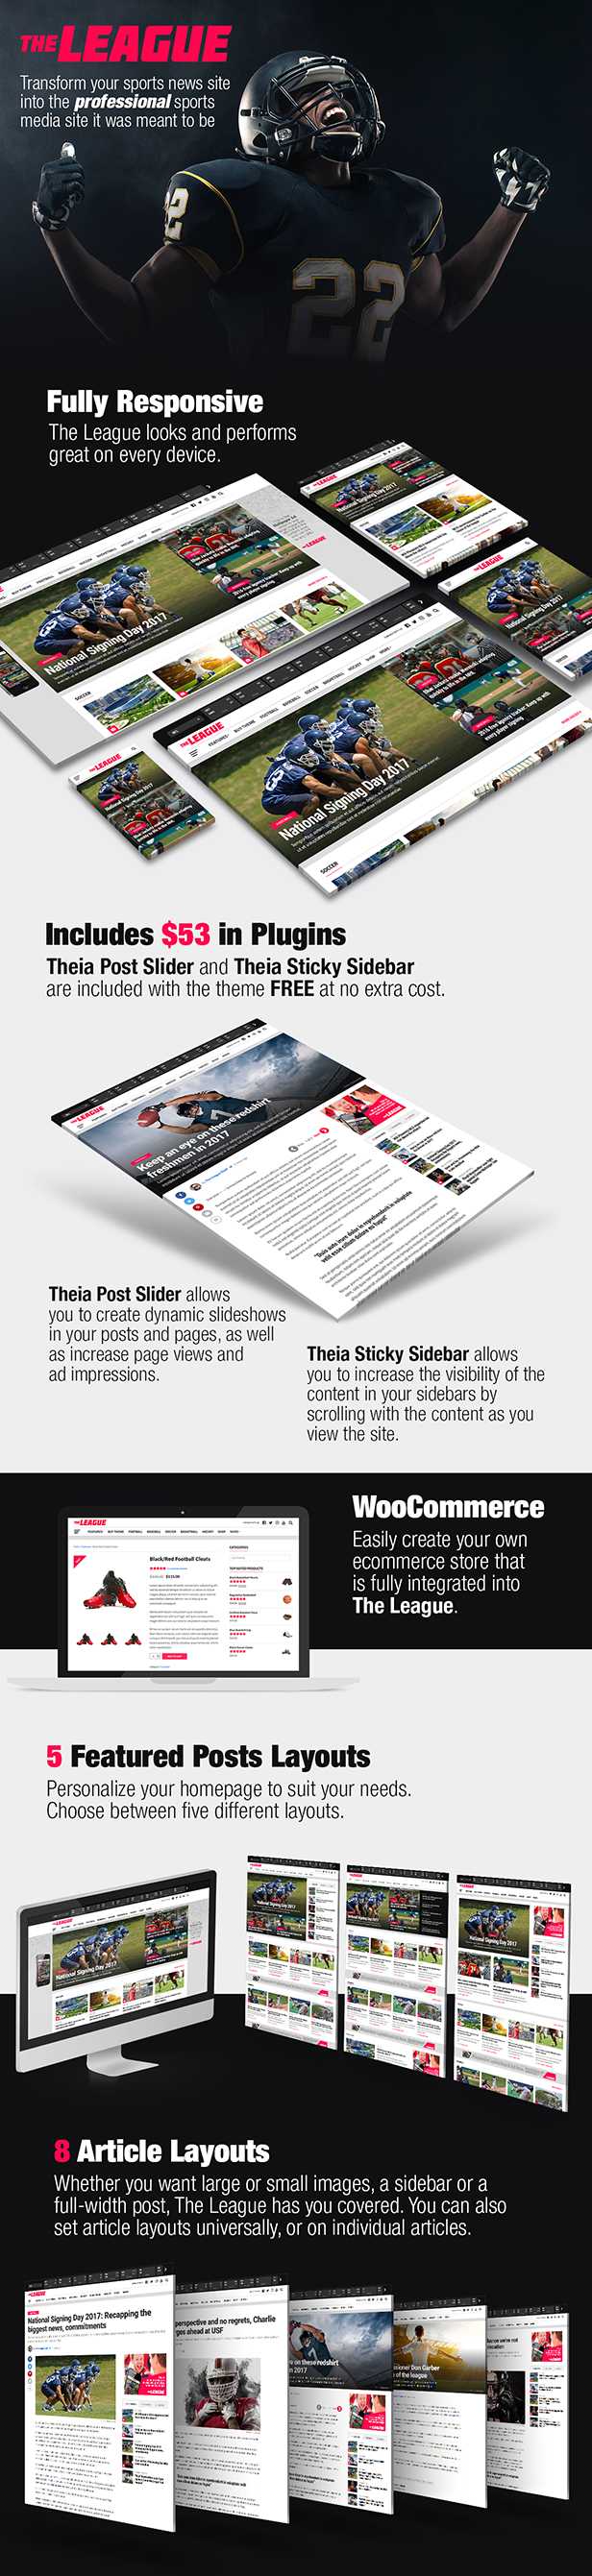 The League - Sports News & Magazine WordPress Theme - 2